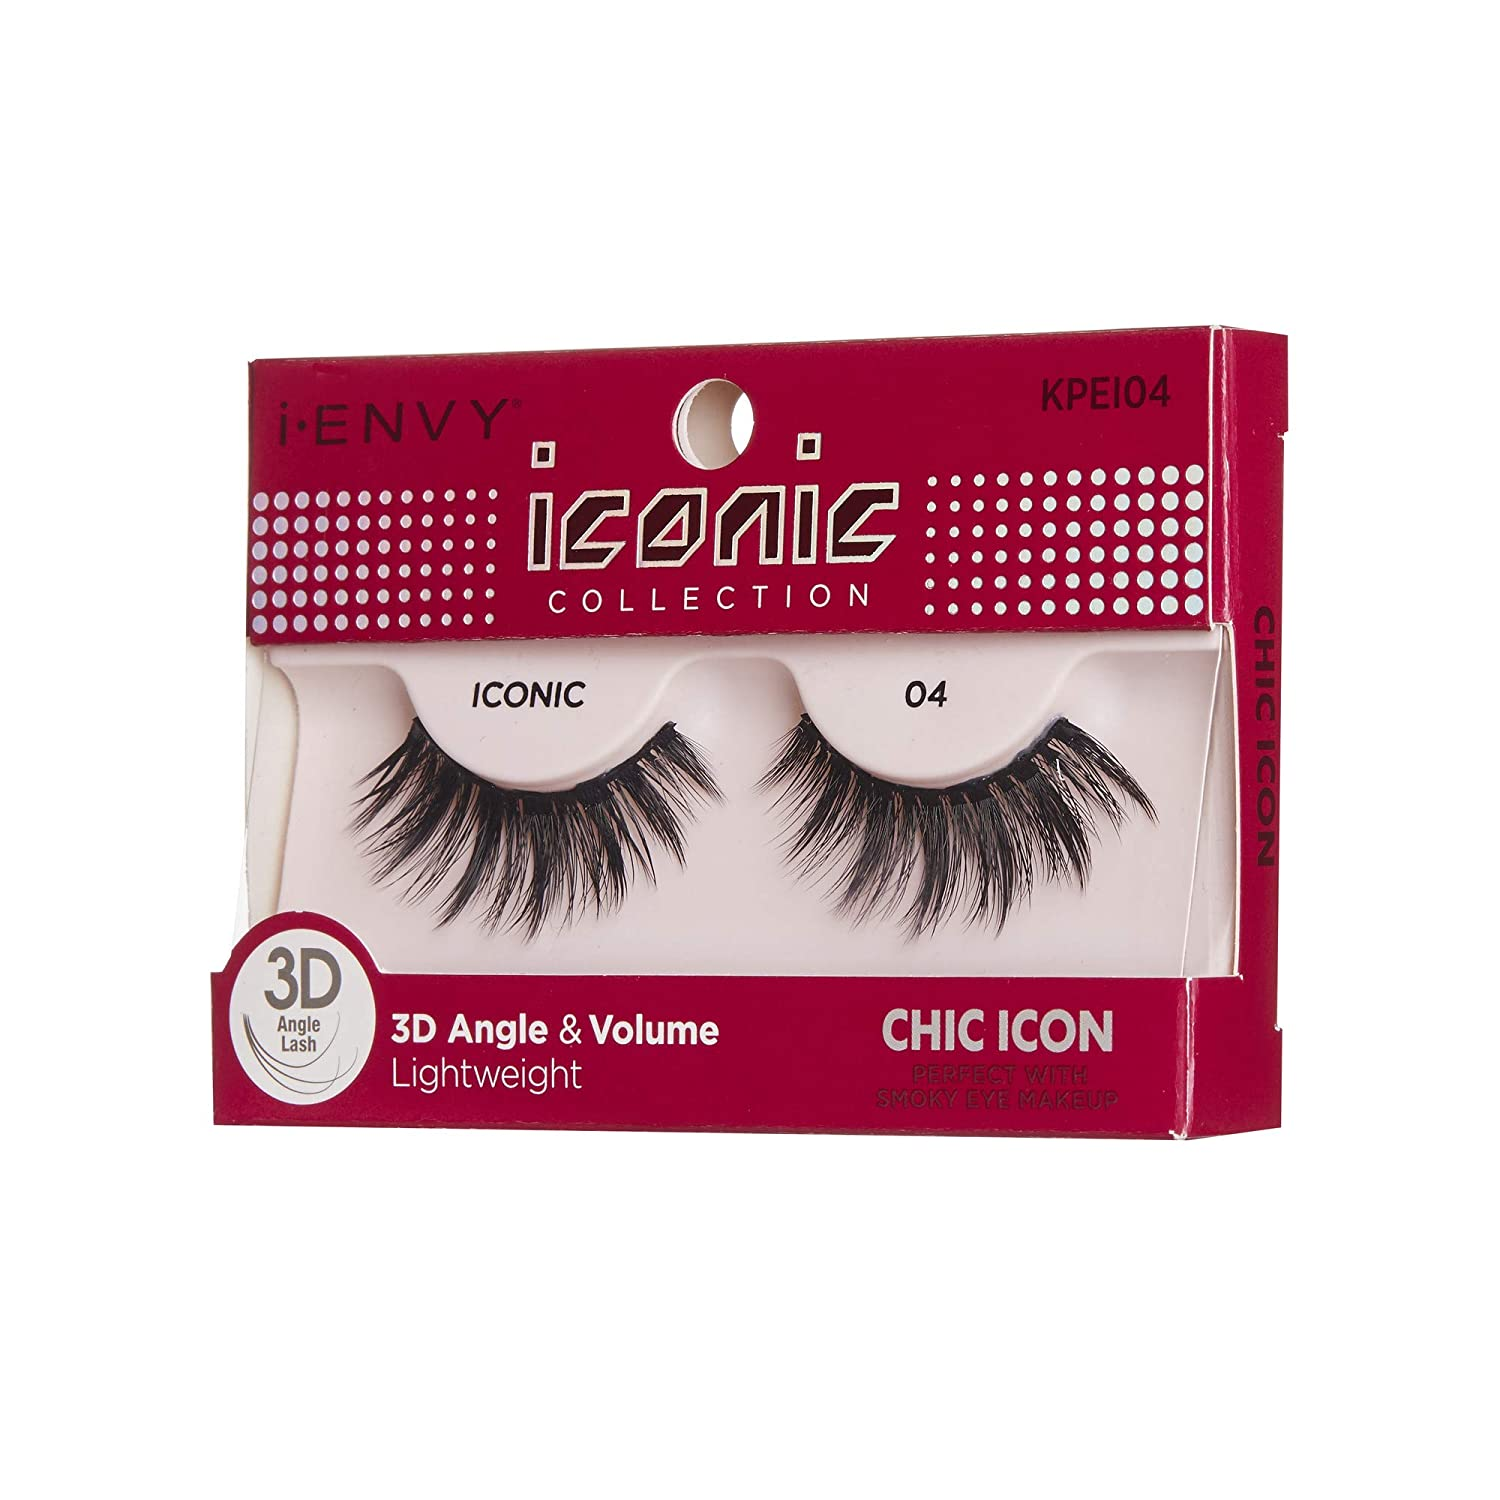 ec24c3f63e2 Amazon.com : i Envy by Kiss iconic 3D Angle & Volume Lashes CHIC ICON 04 :  Beauty